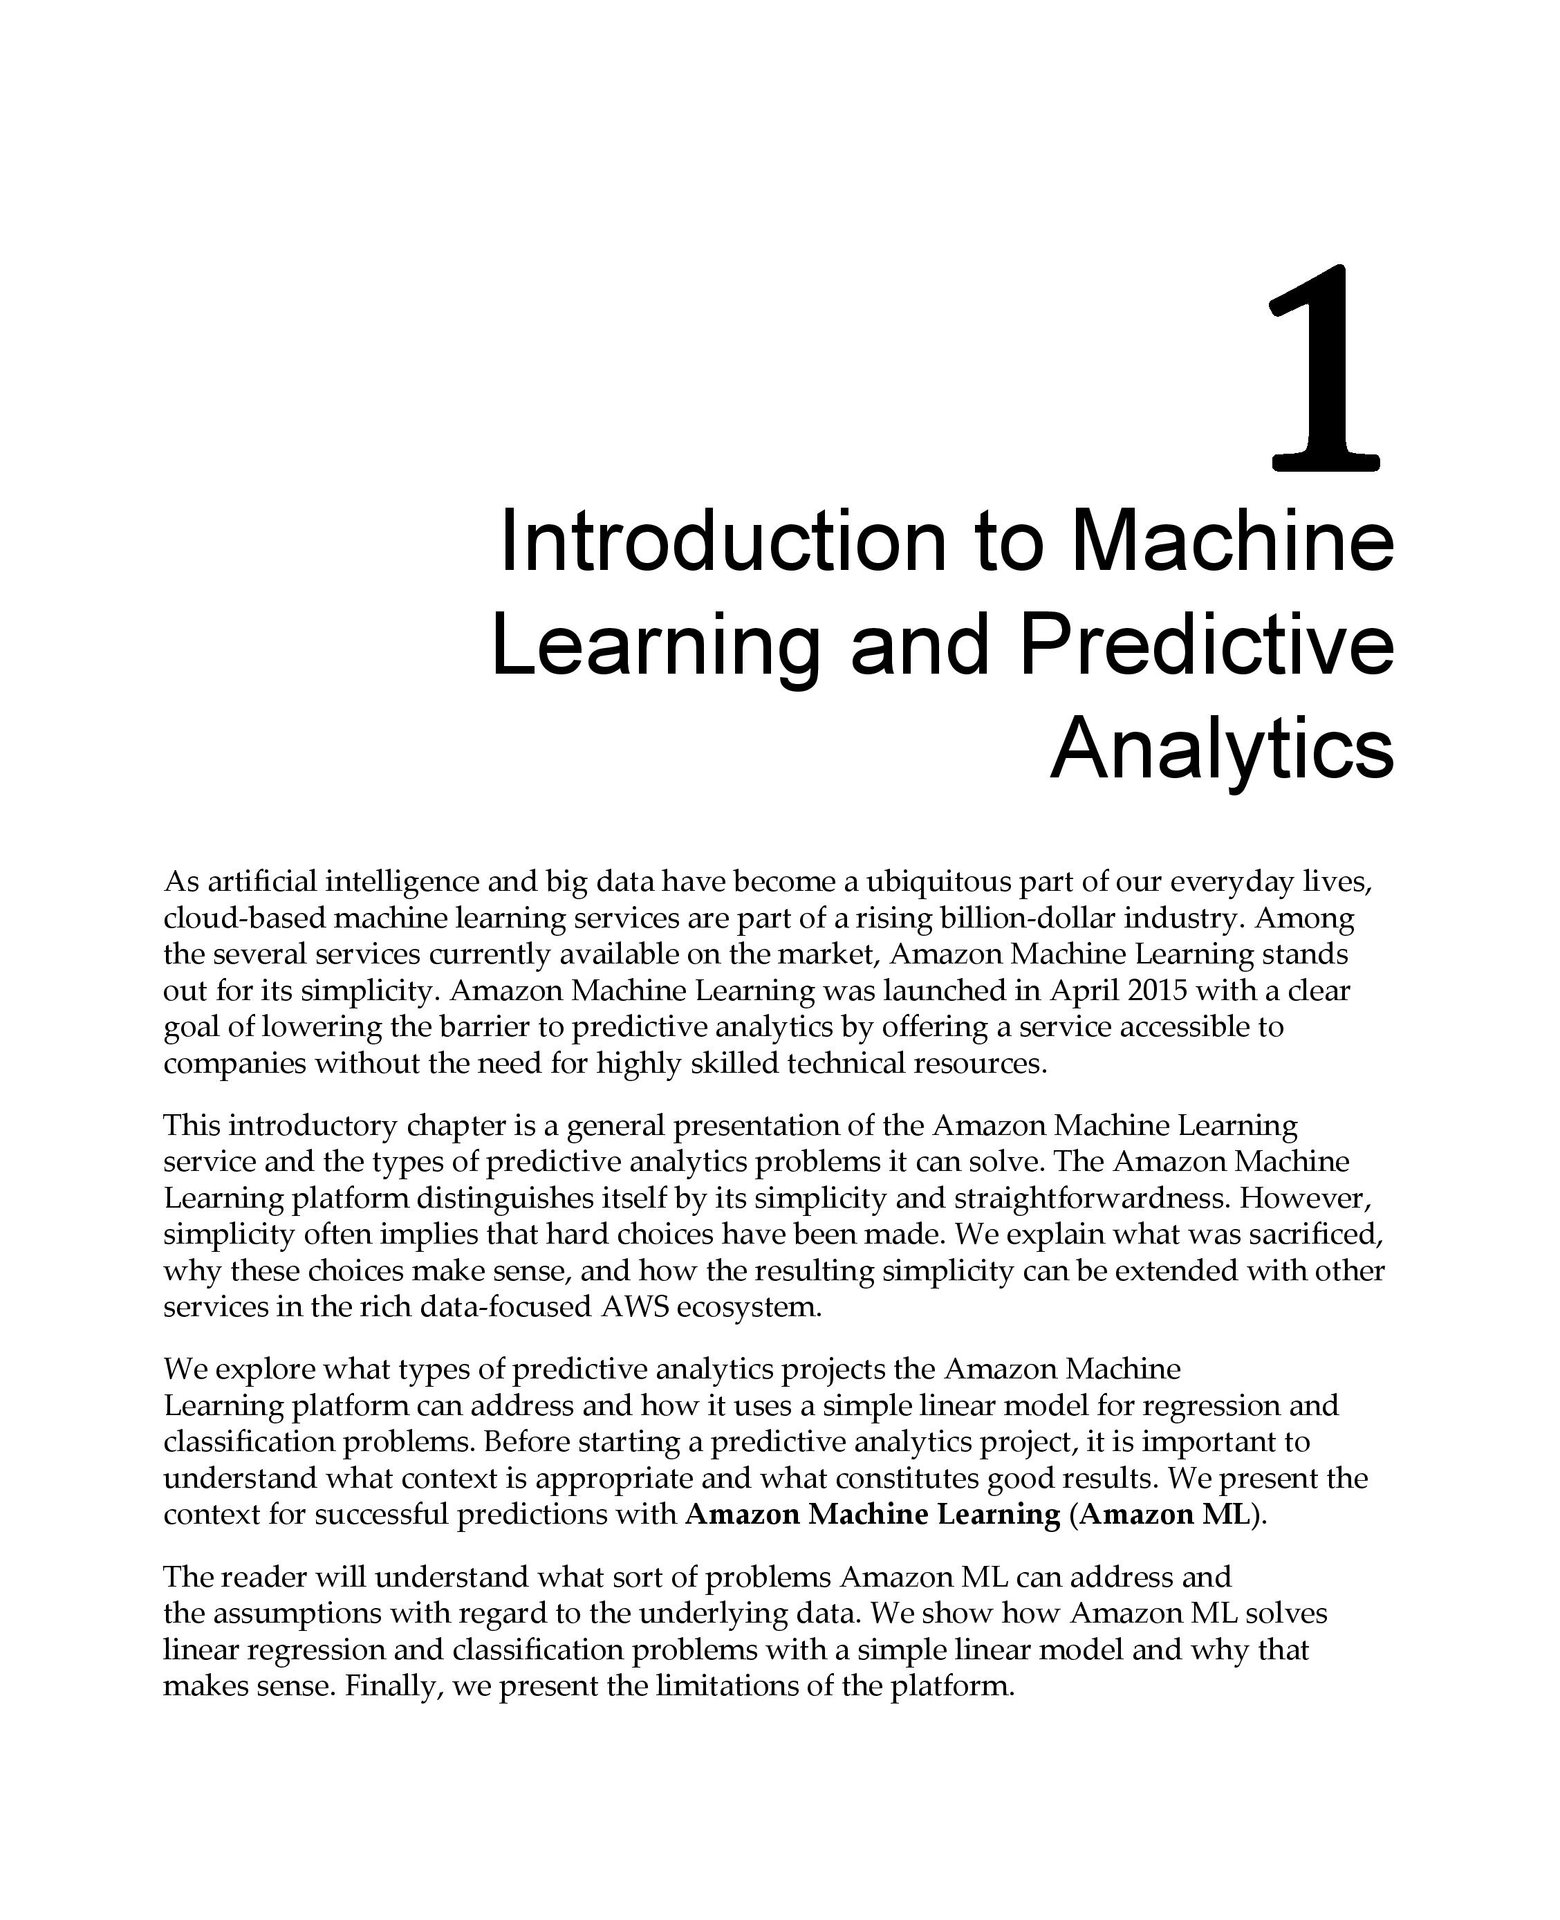 Effective Amazon Machine Learning-preview-7